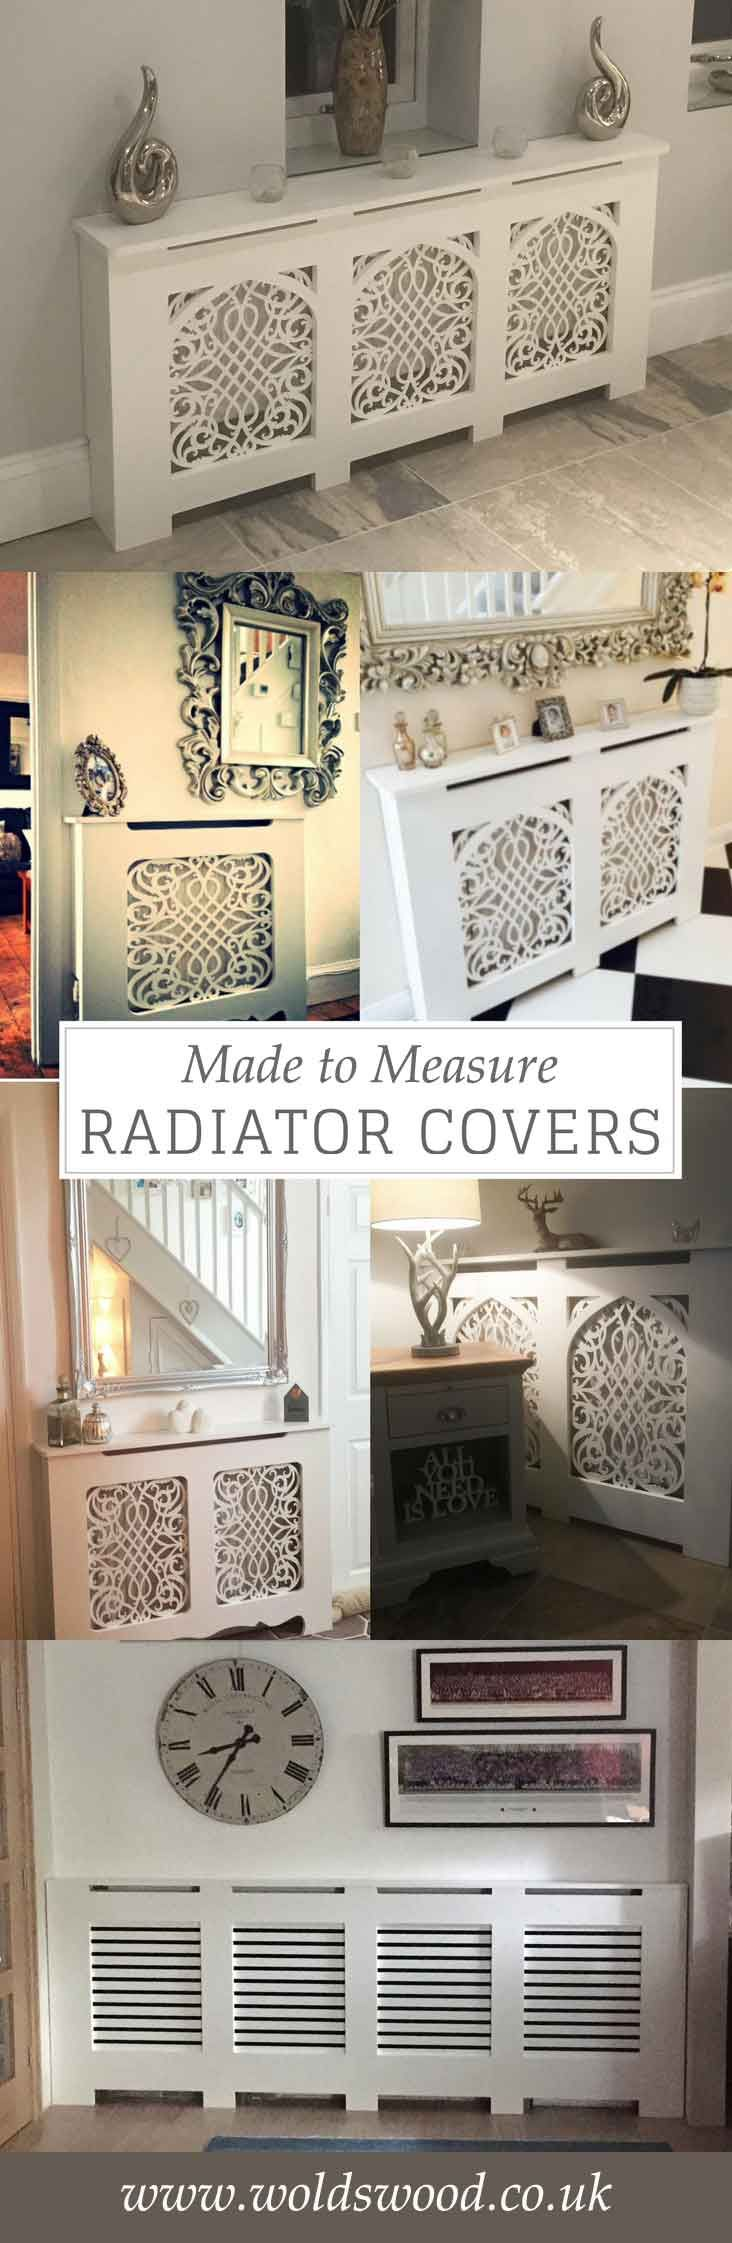 Made to Measure Radiator Covers - Behind the Scenes | Shaker style ...